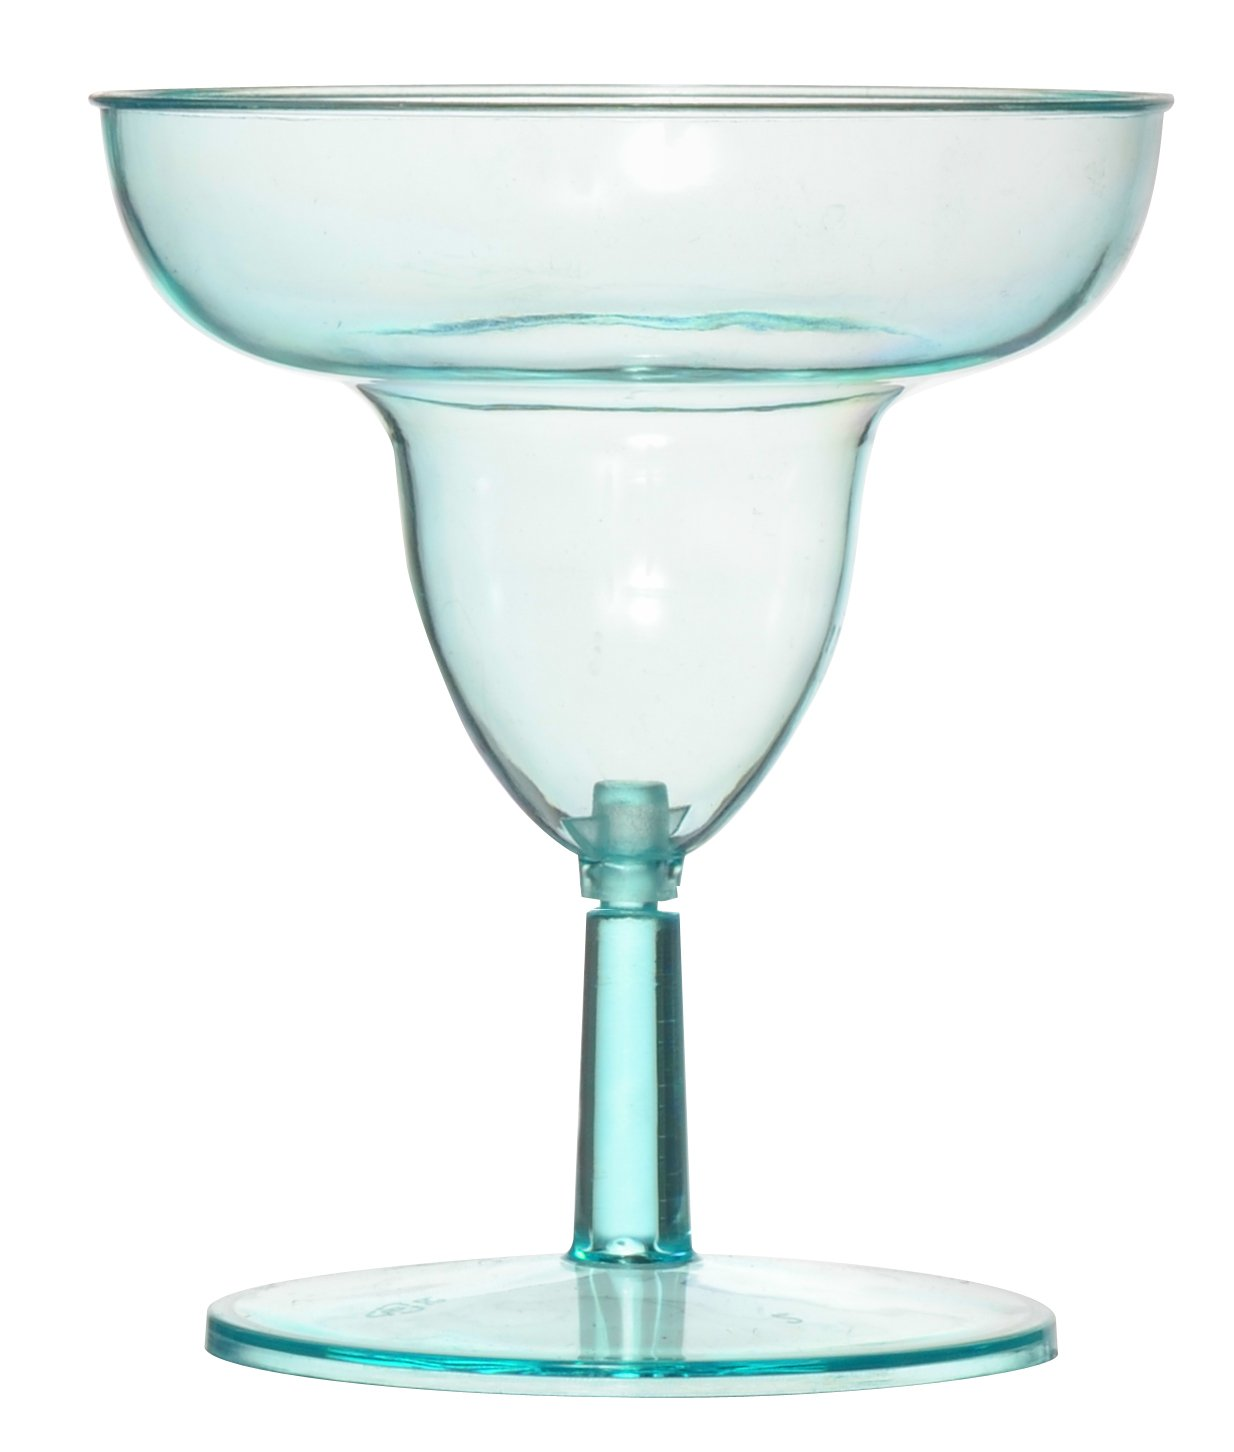 Fineline Settings Tiny Temptations Clear Two Piece 2 Oz. Tiny Toasts-Margarita Glass 120 Pieces Fine Line Settings Inc. 6402-CL